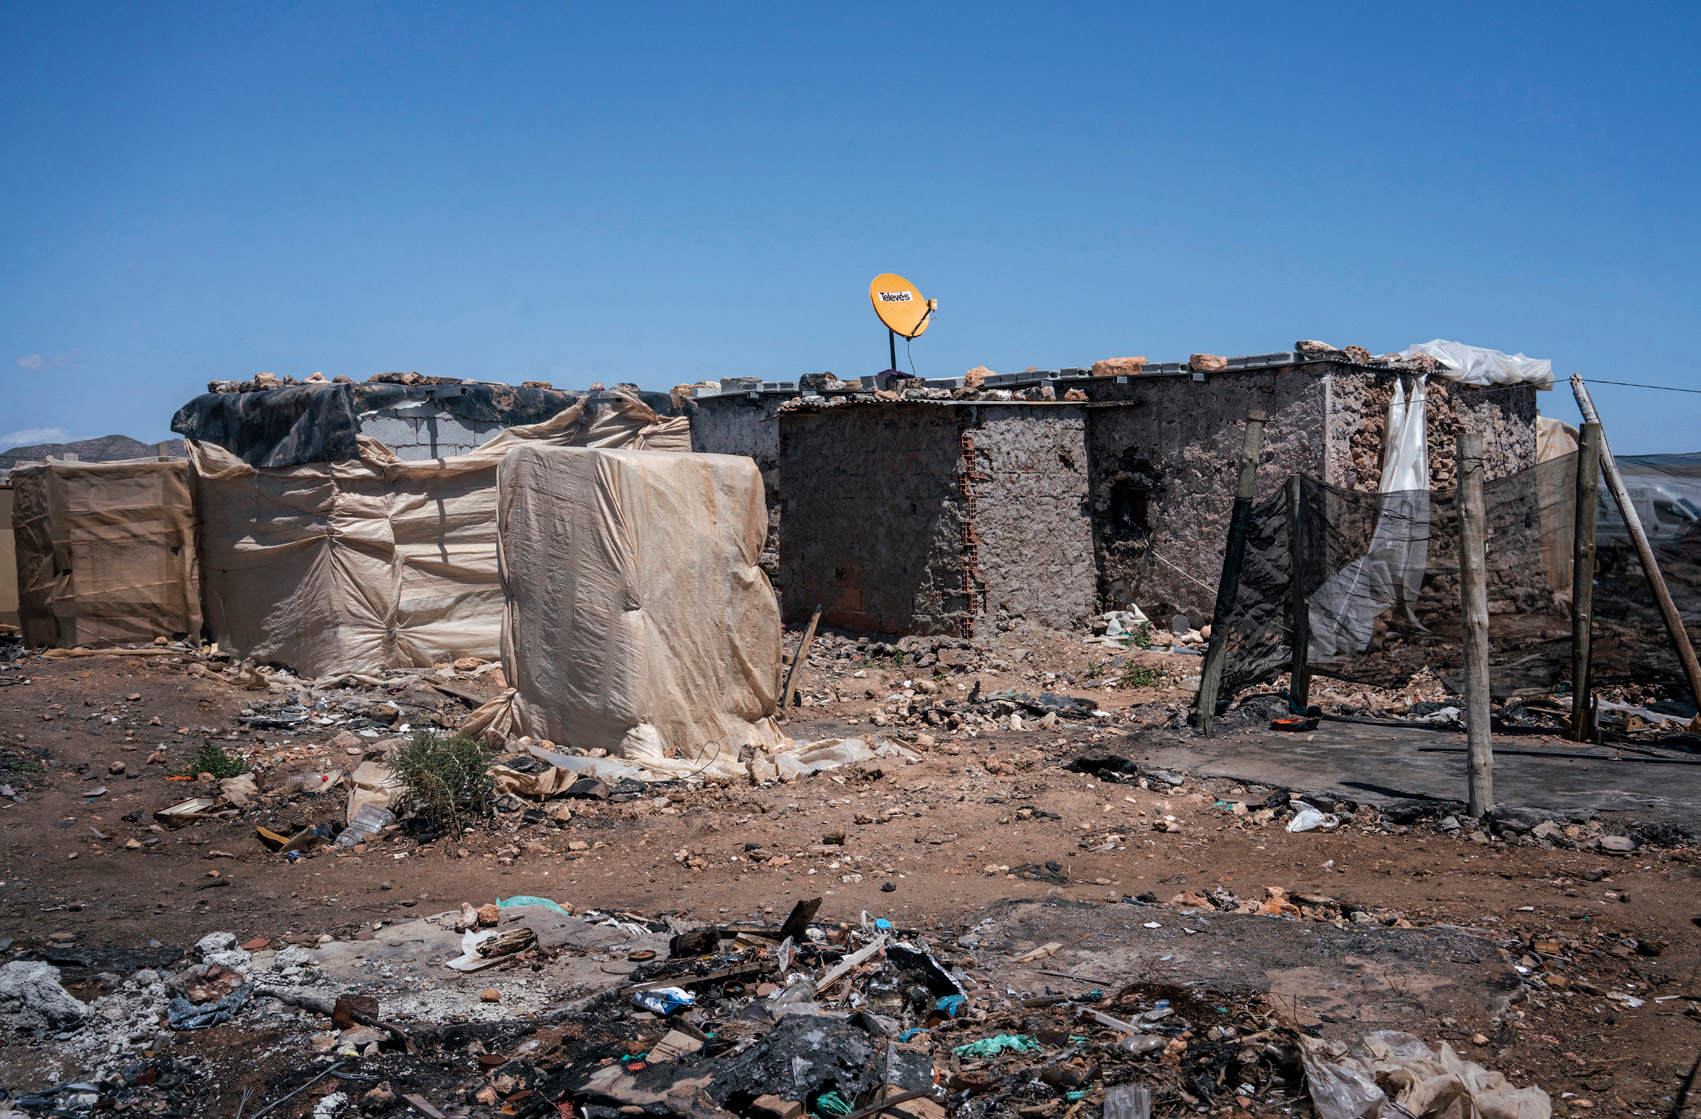 Self-constructed shacks in the migrant workers' ghetto, Spain.